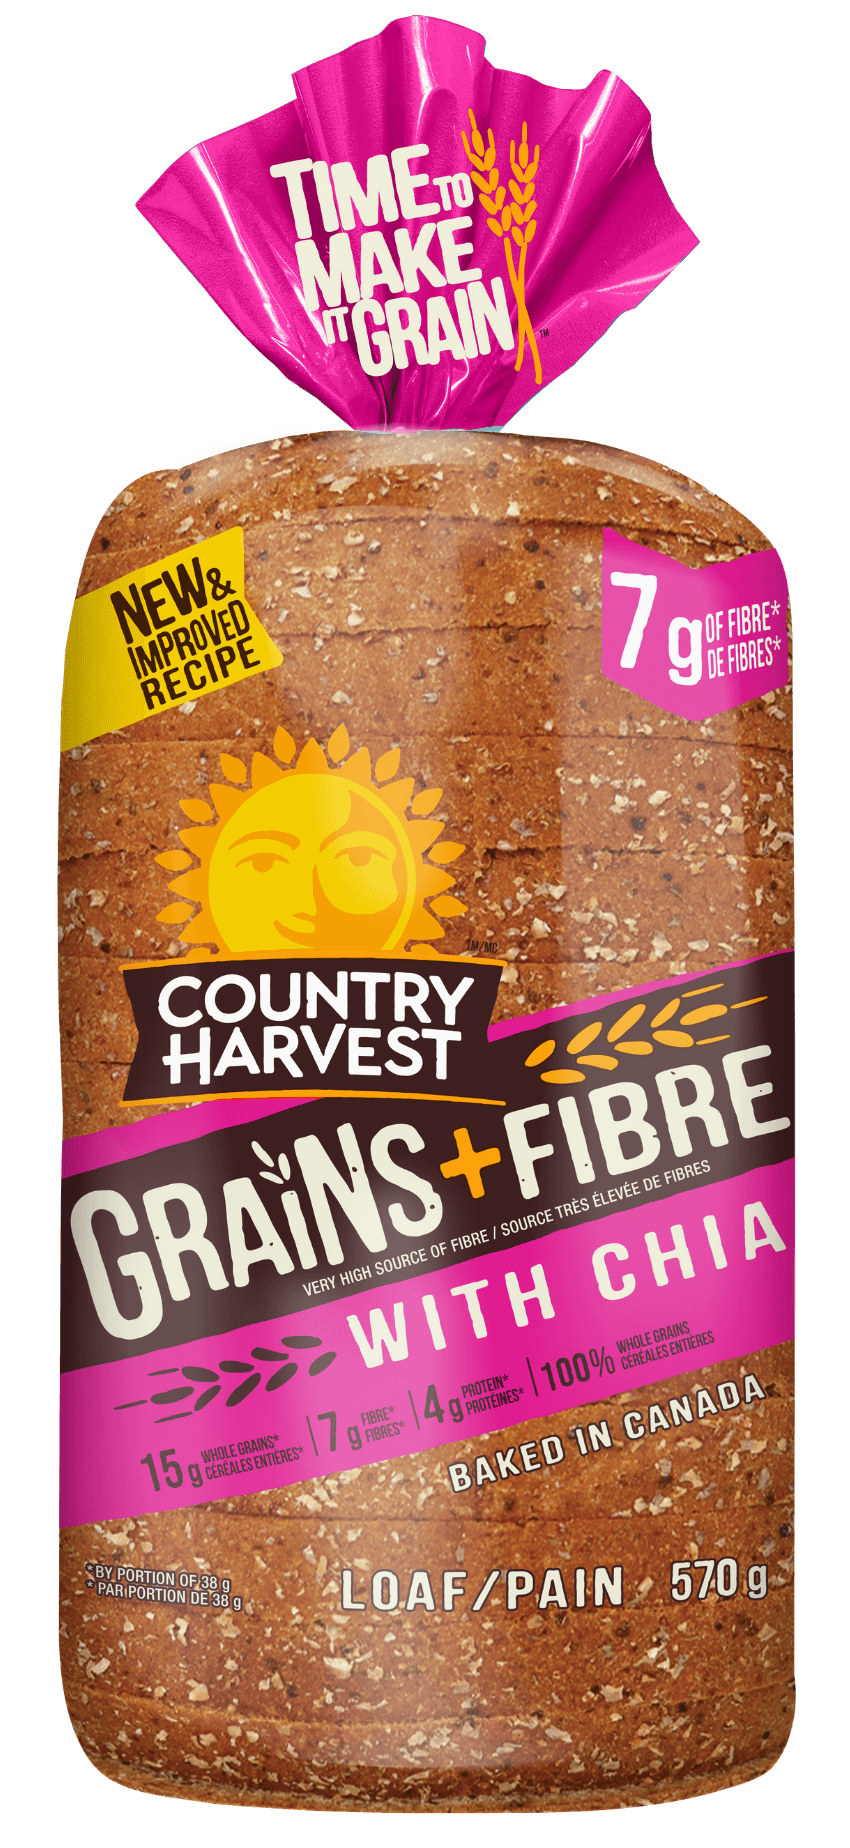 Country-Harvest-Fibre-Chia-Pack-min-min